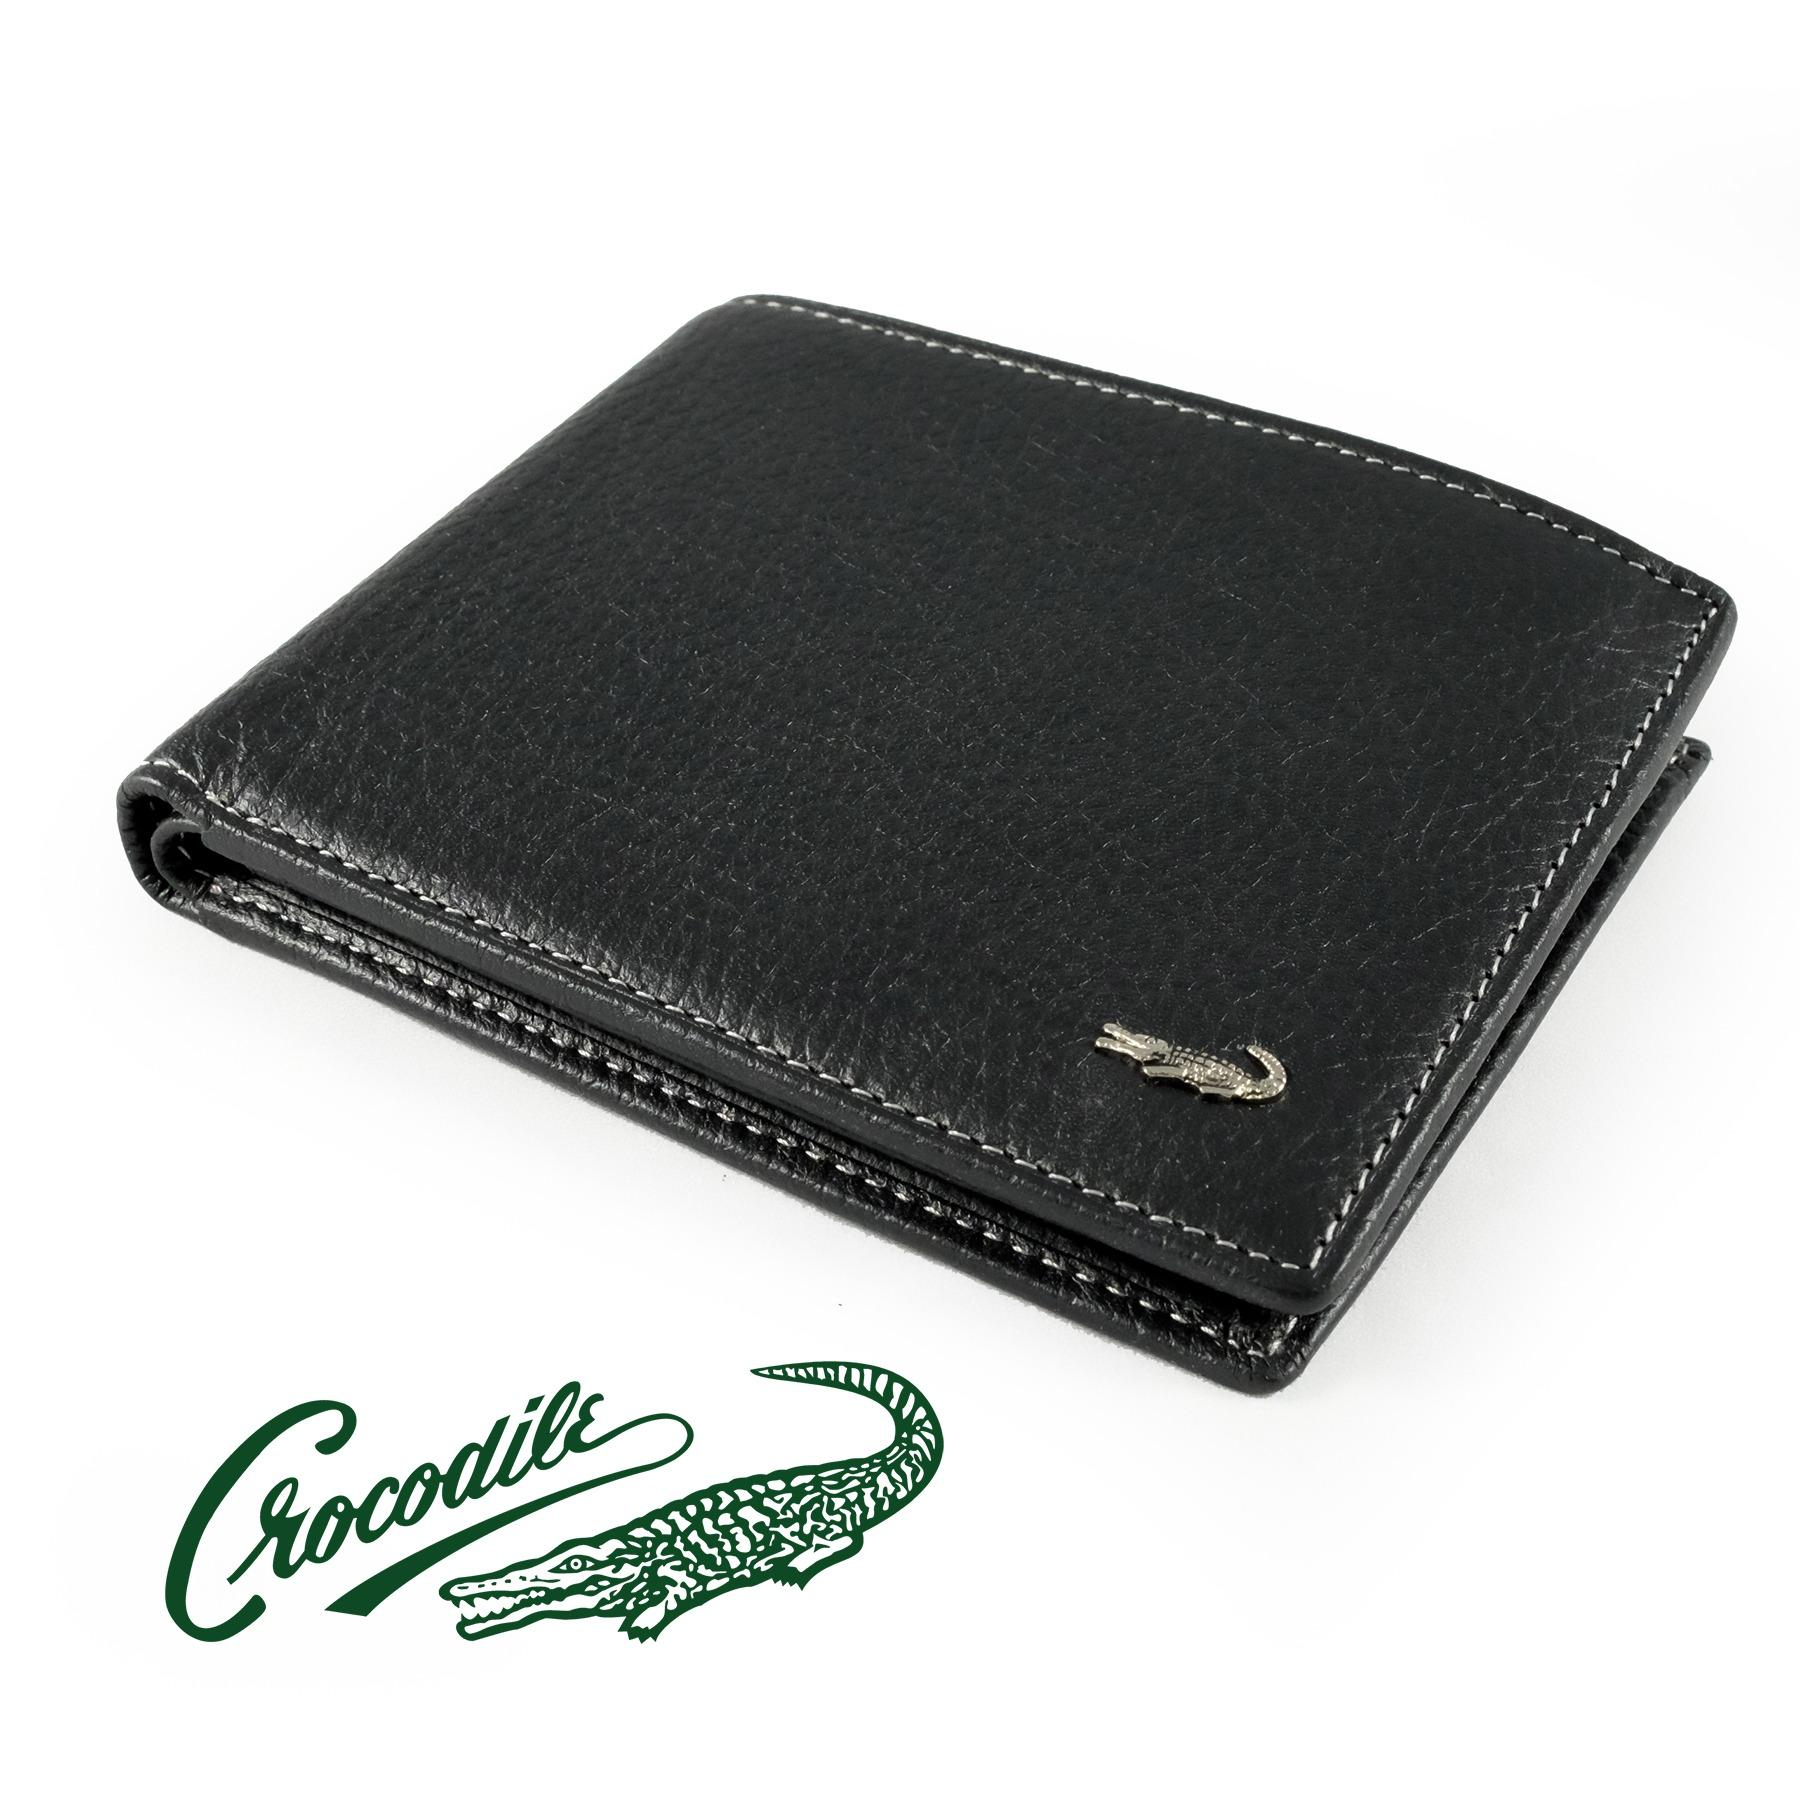 0203-11041 Dompet Pria Men Wallet Leather Kulit Crocodile Original ee5f3944fc